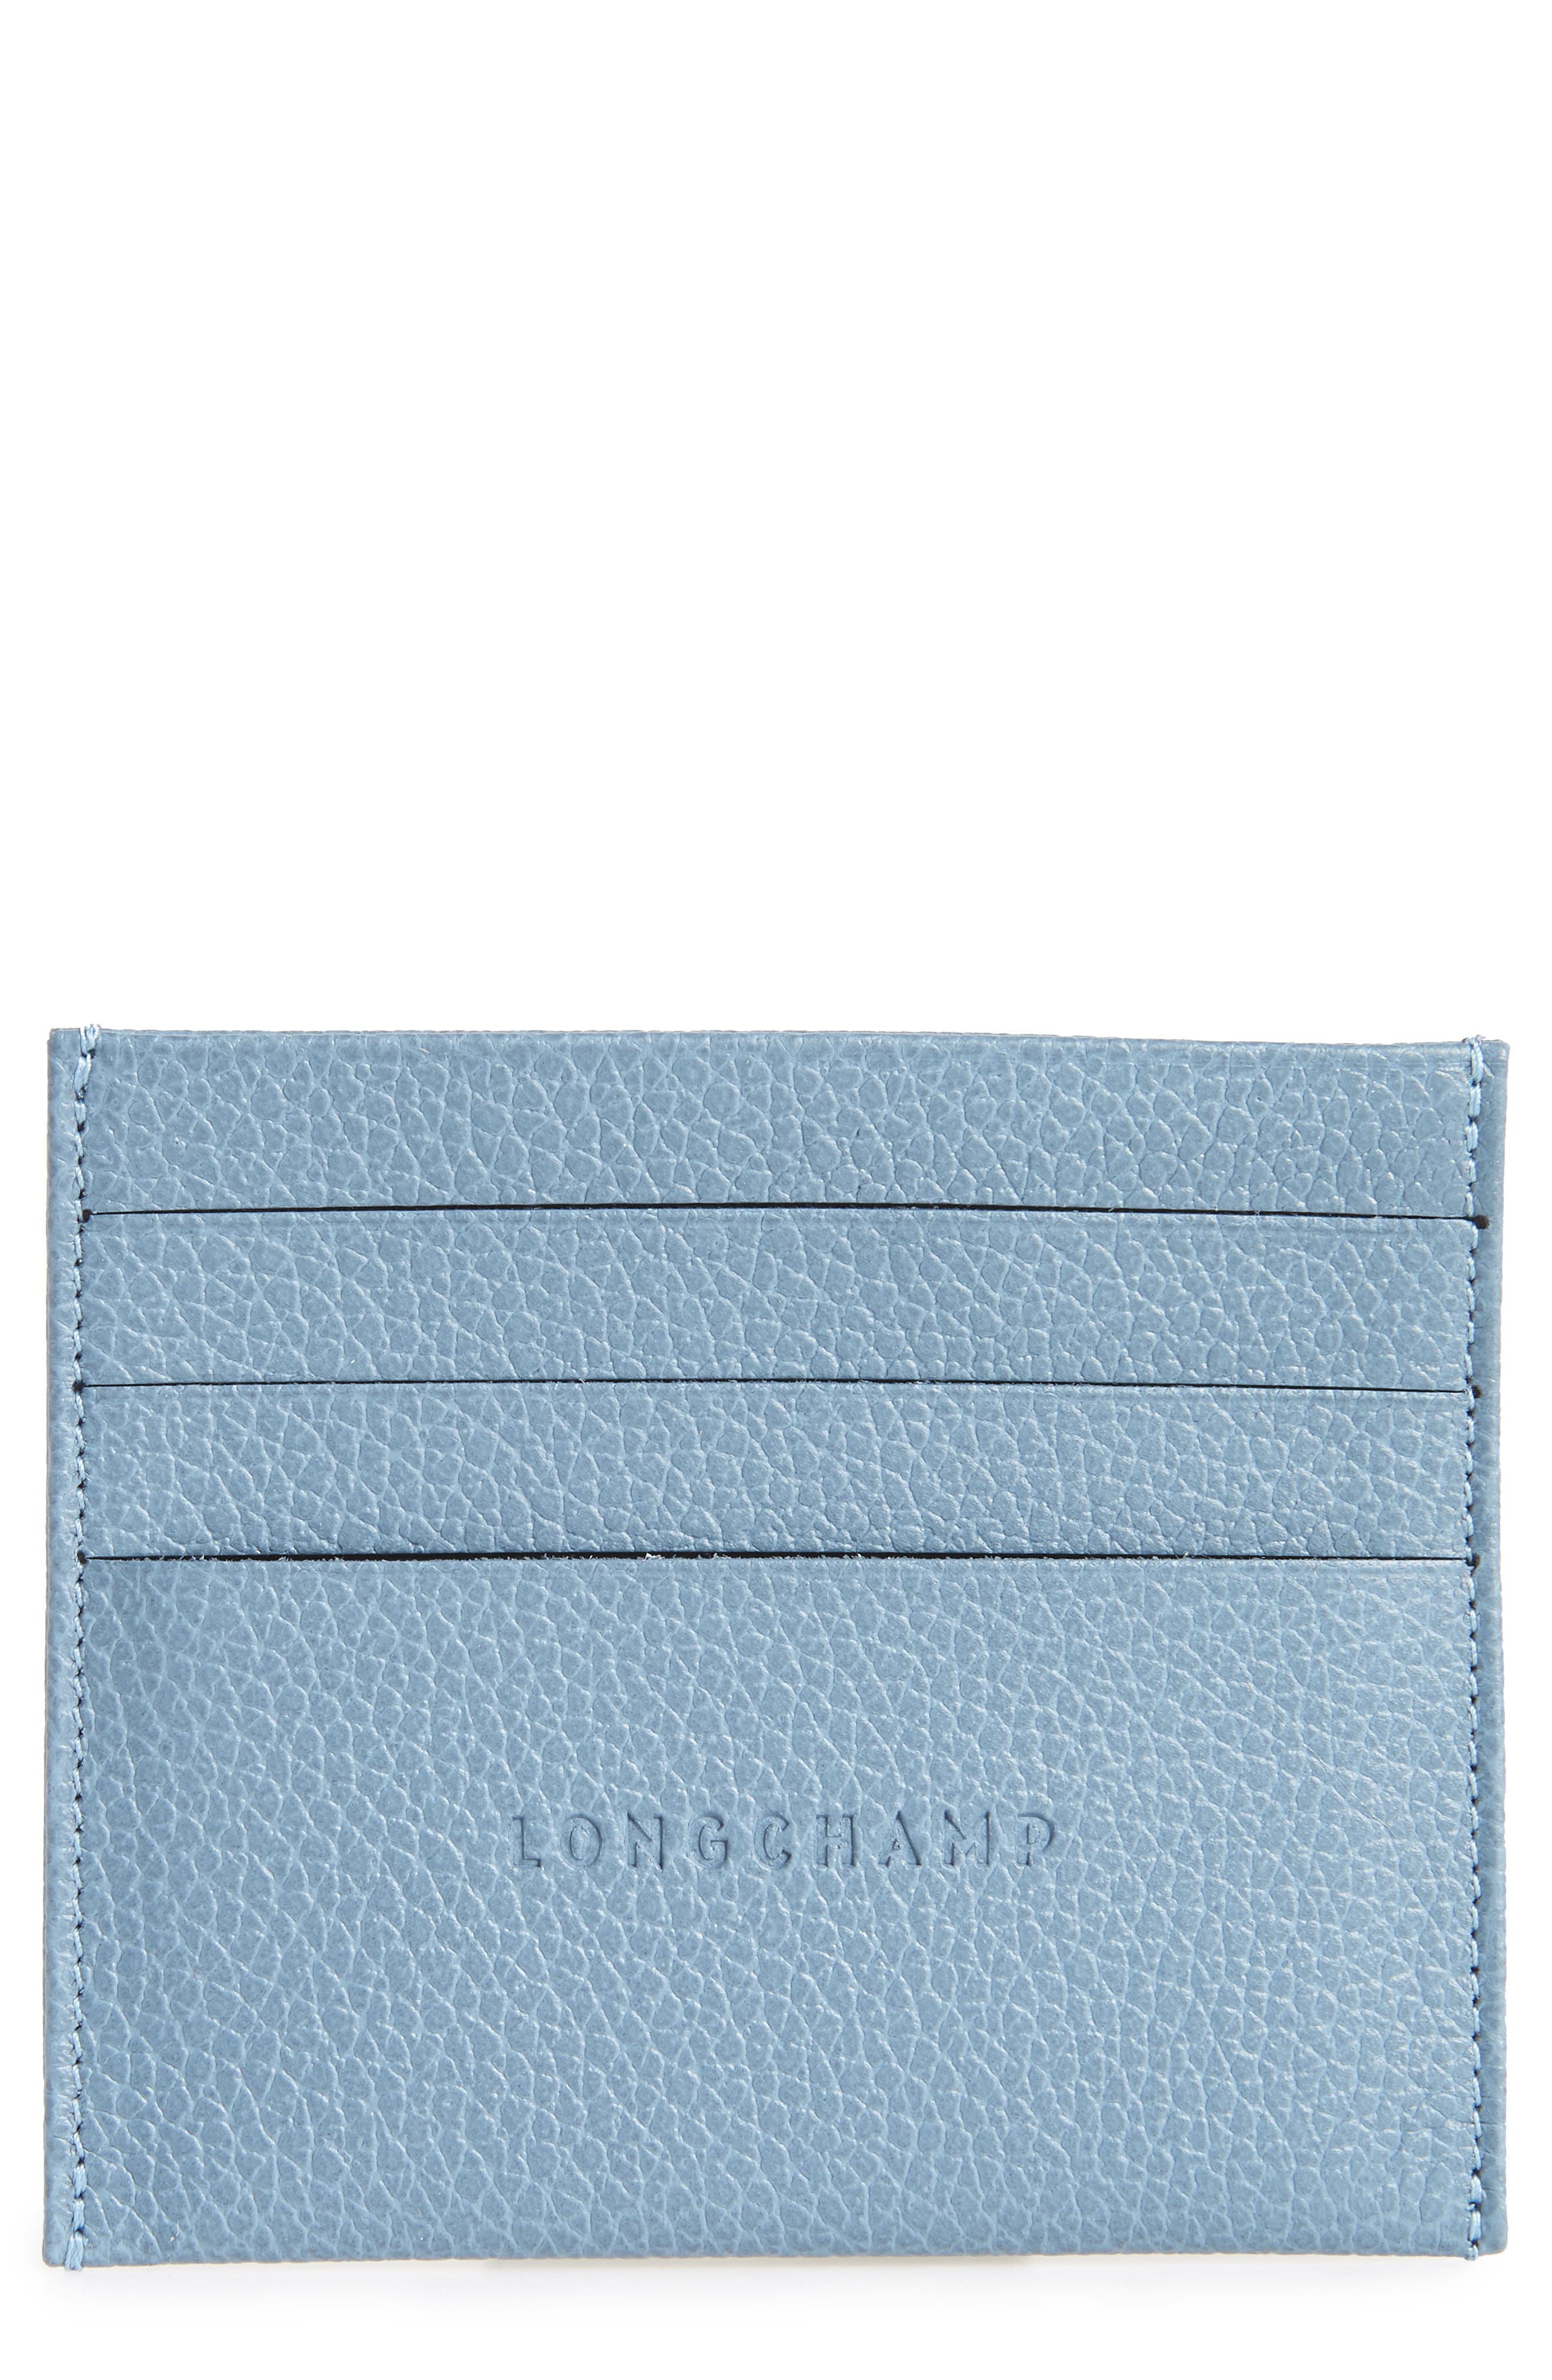 'Le Foulonne' Pebbled Leather Card Holder,                             Main thumbnail 1, color,                             NORDIC